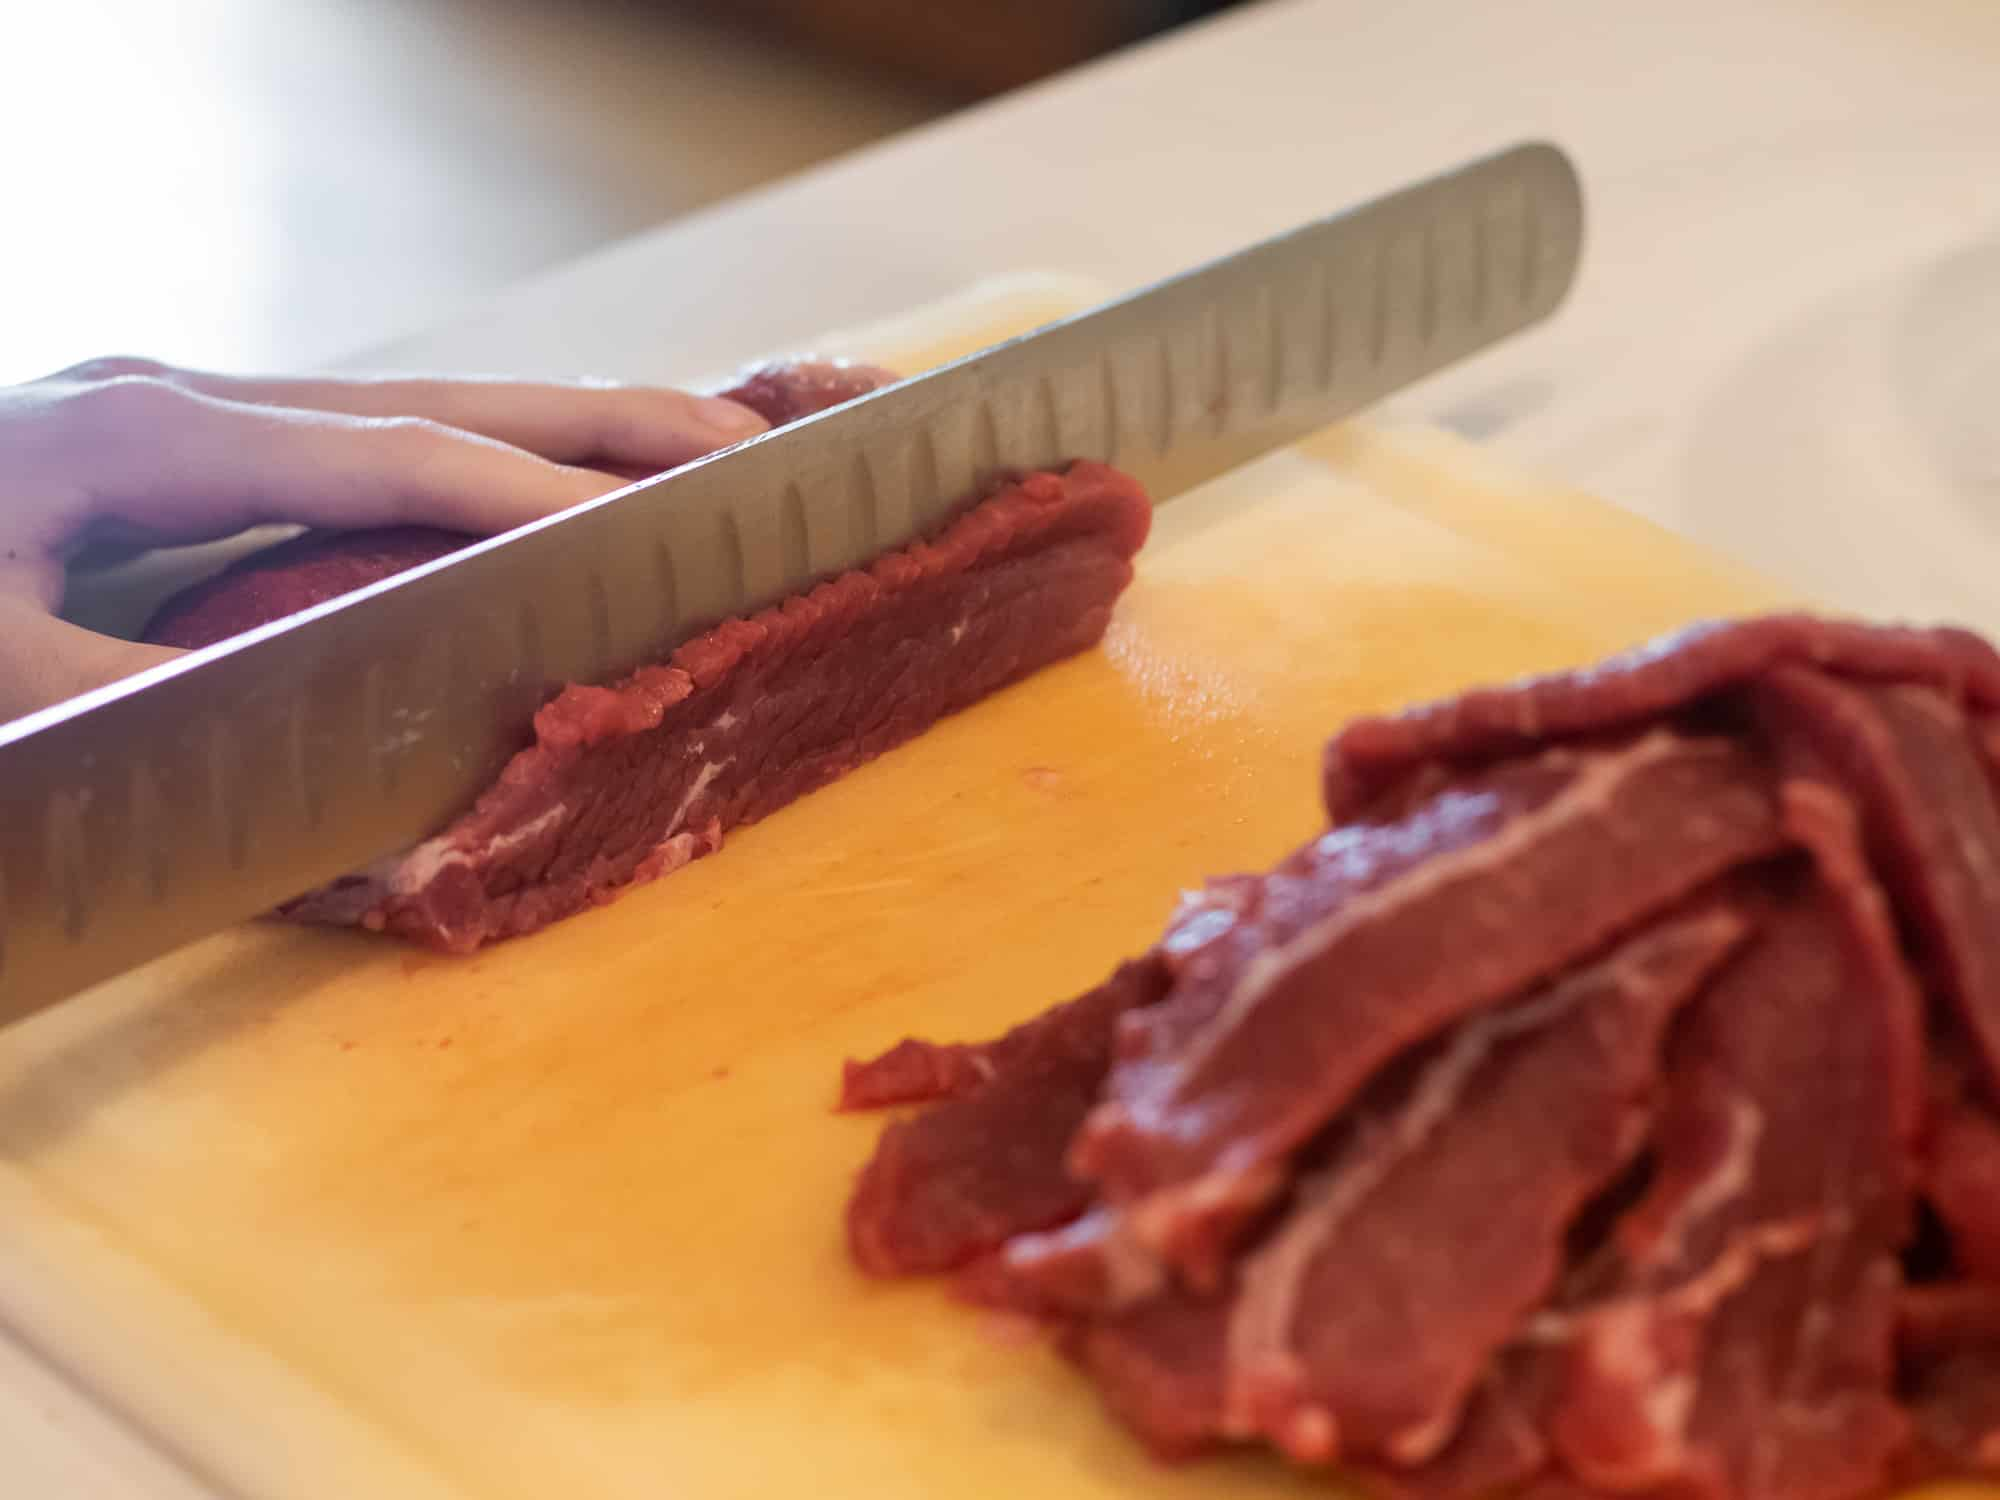 Slicing the beef round roast into thin strips.